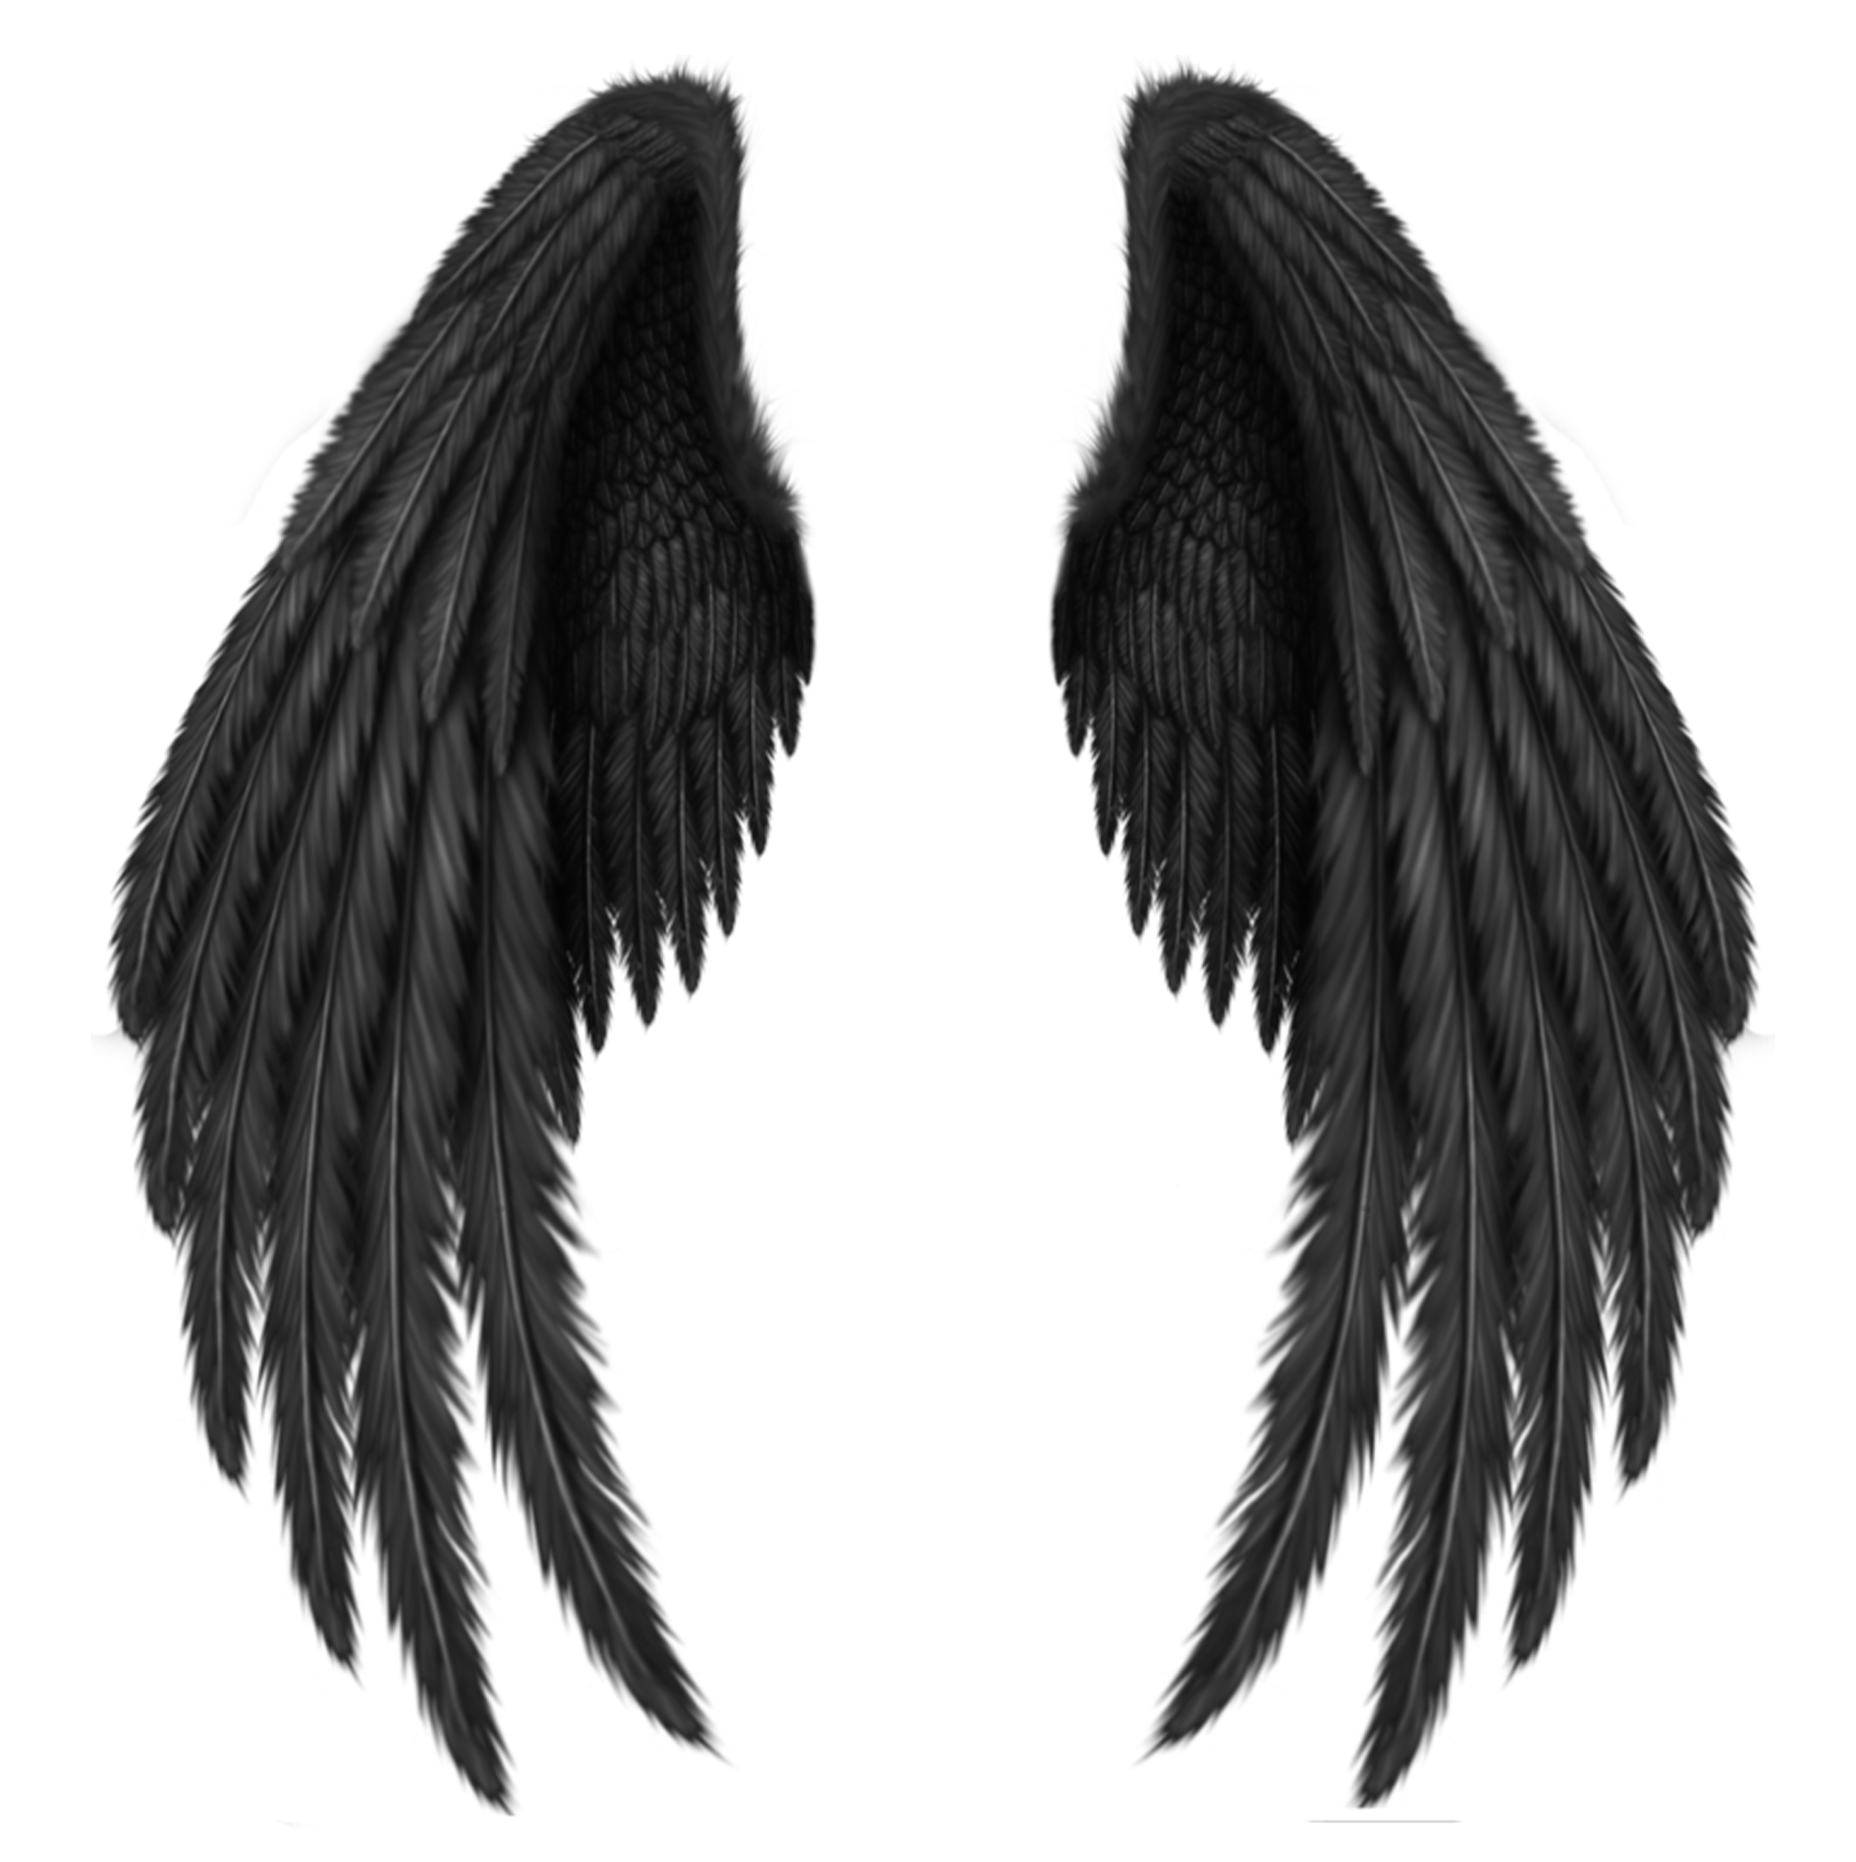 Transparent angel wings png. Black clipart picture artistically